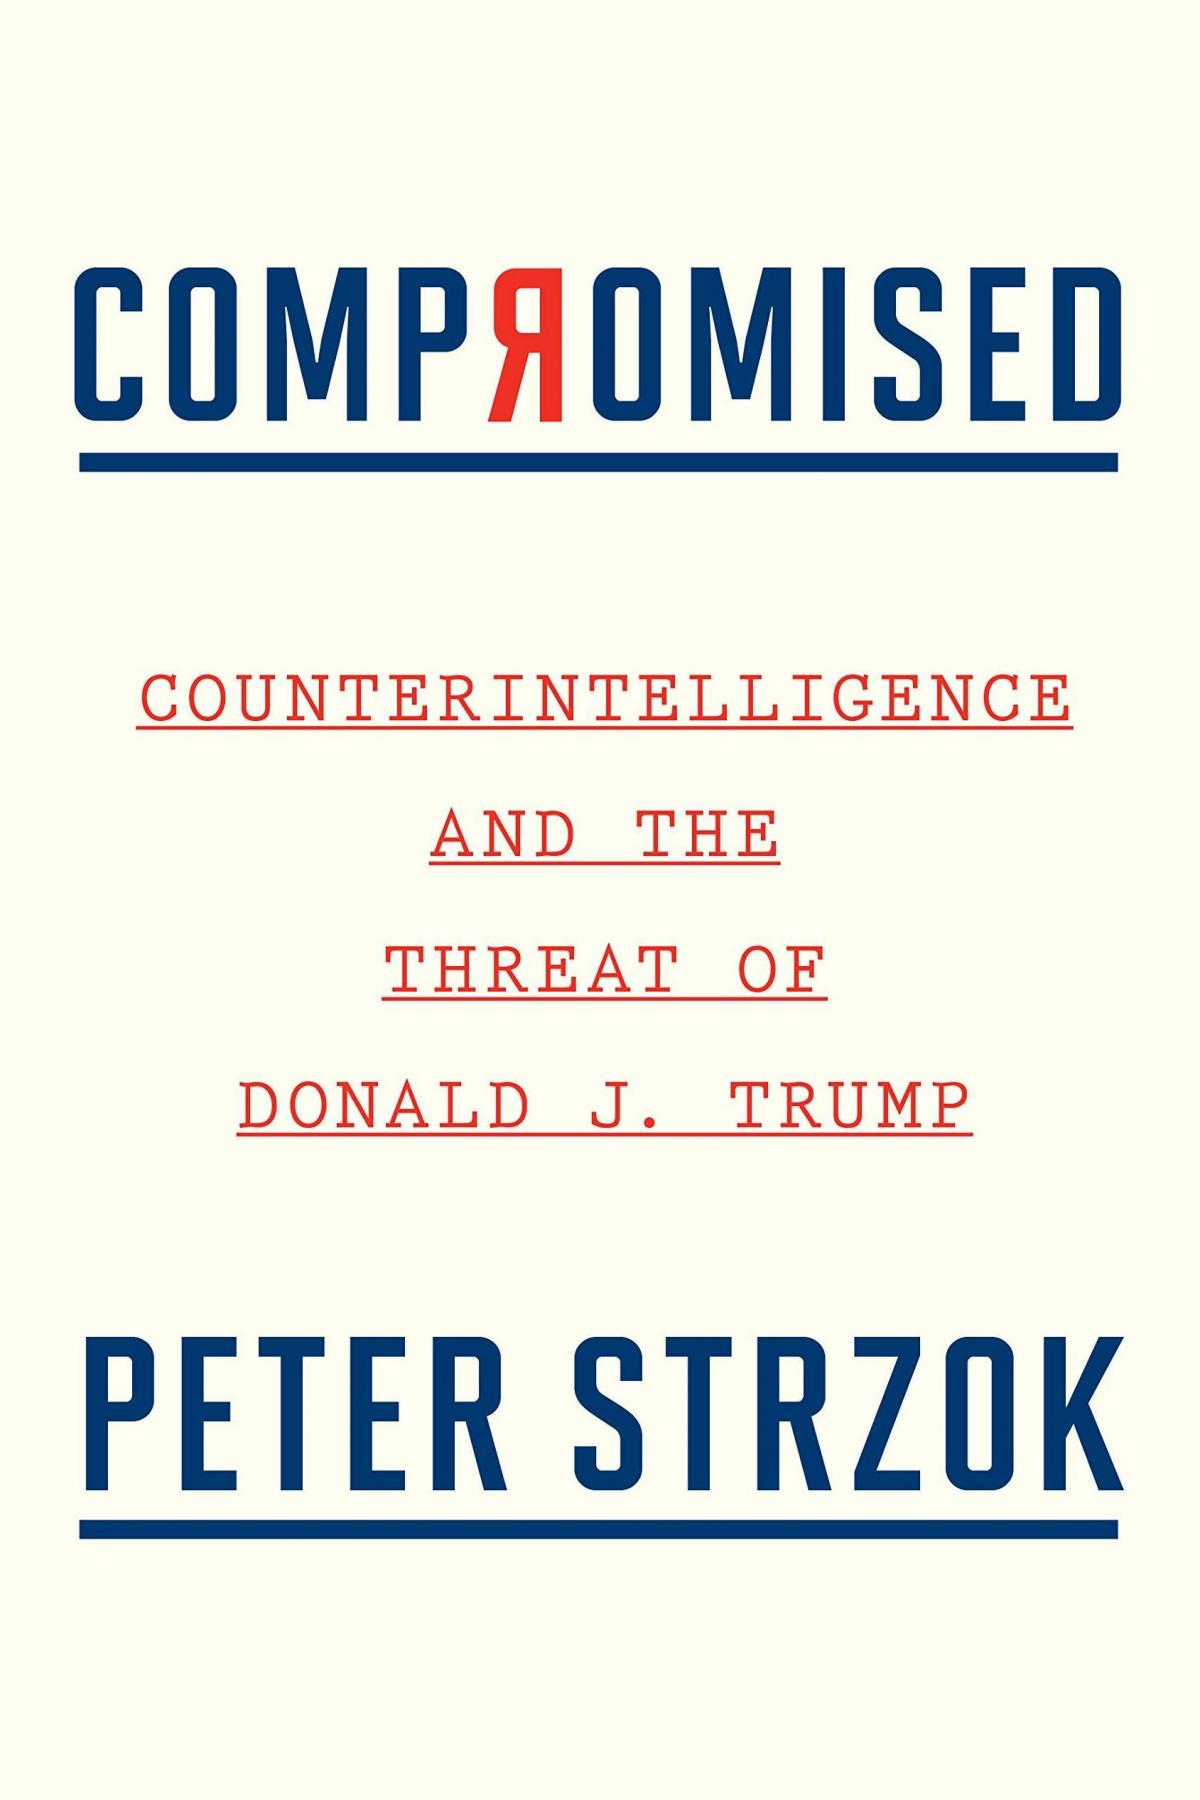 Compromised: Counterintelligence and the Threat of Donald J. Trump, by Peter Strzok